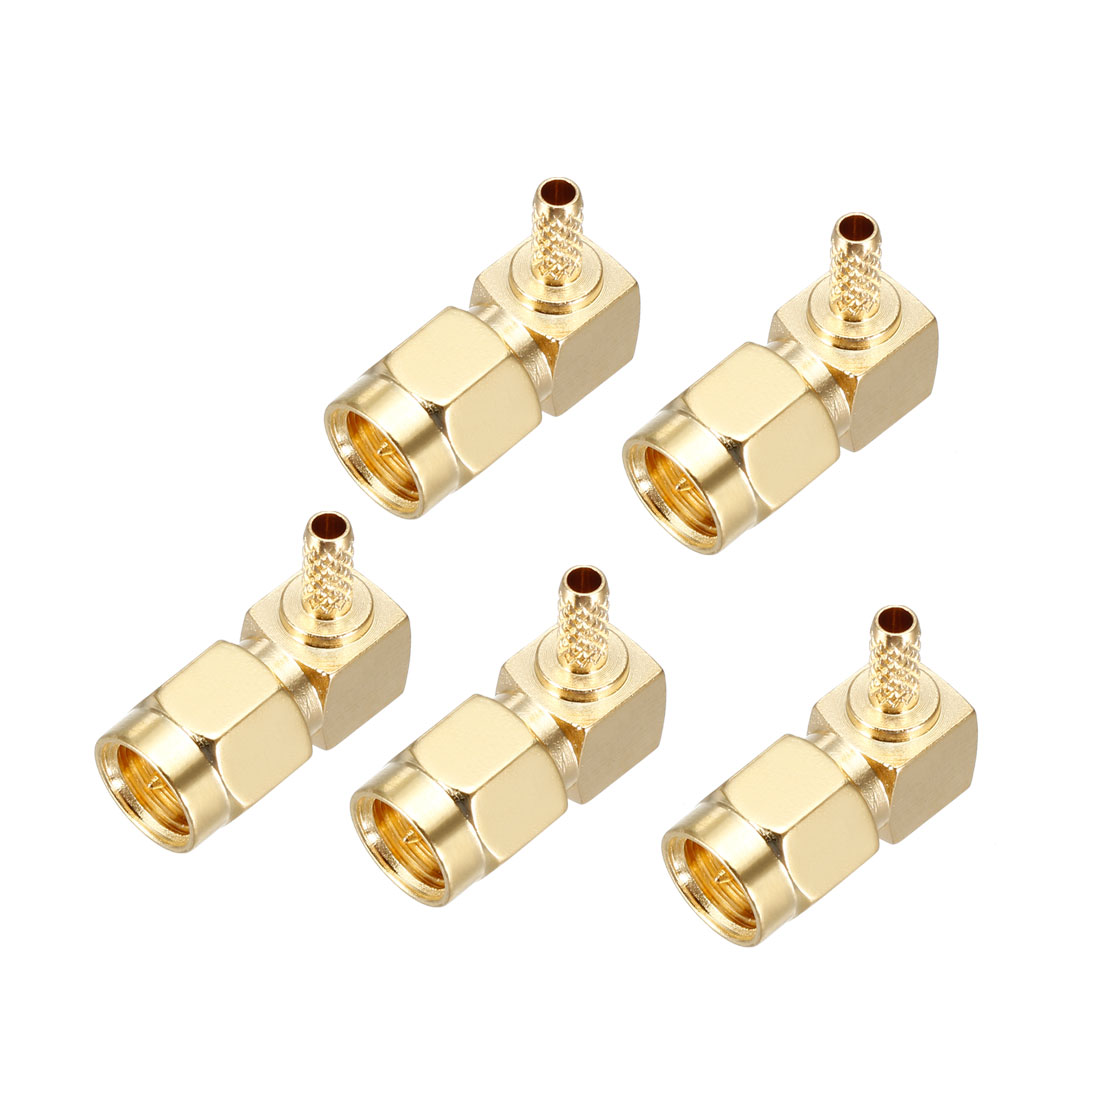 5x SMA Male Plug Right Angle Crimp RG174 RG316 LMR100 RF Connector